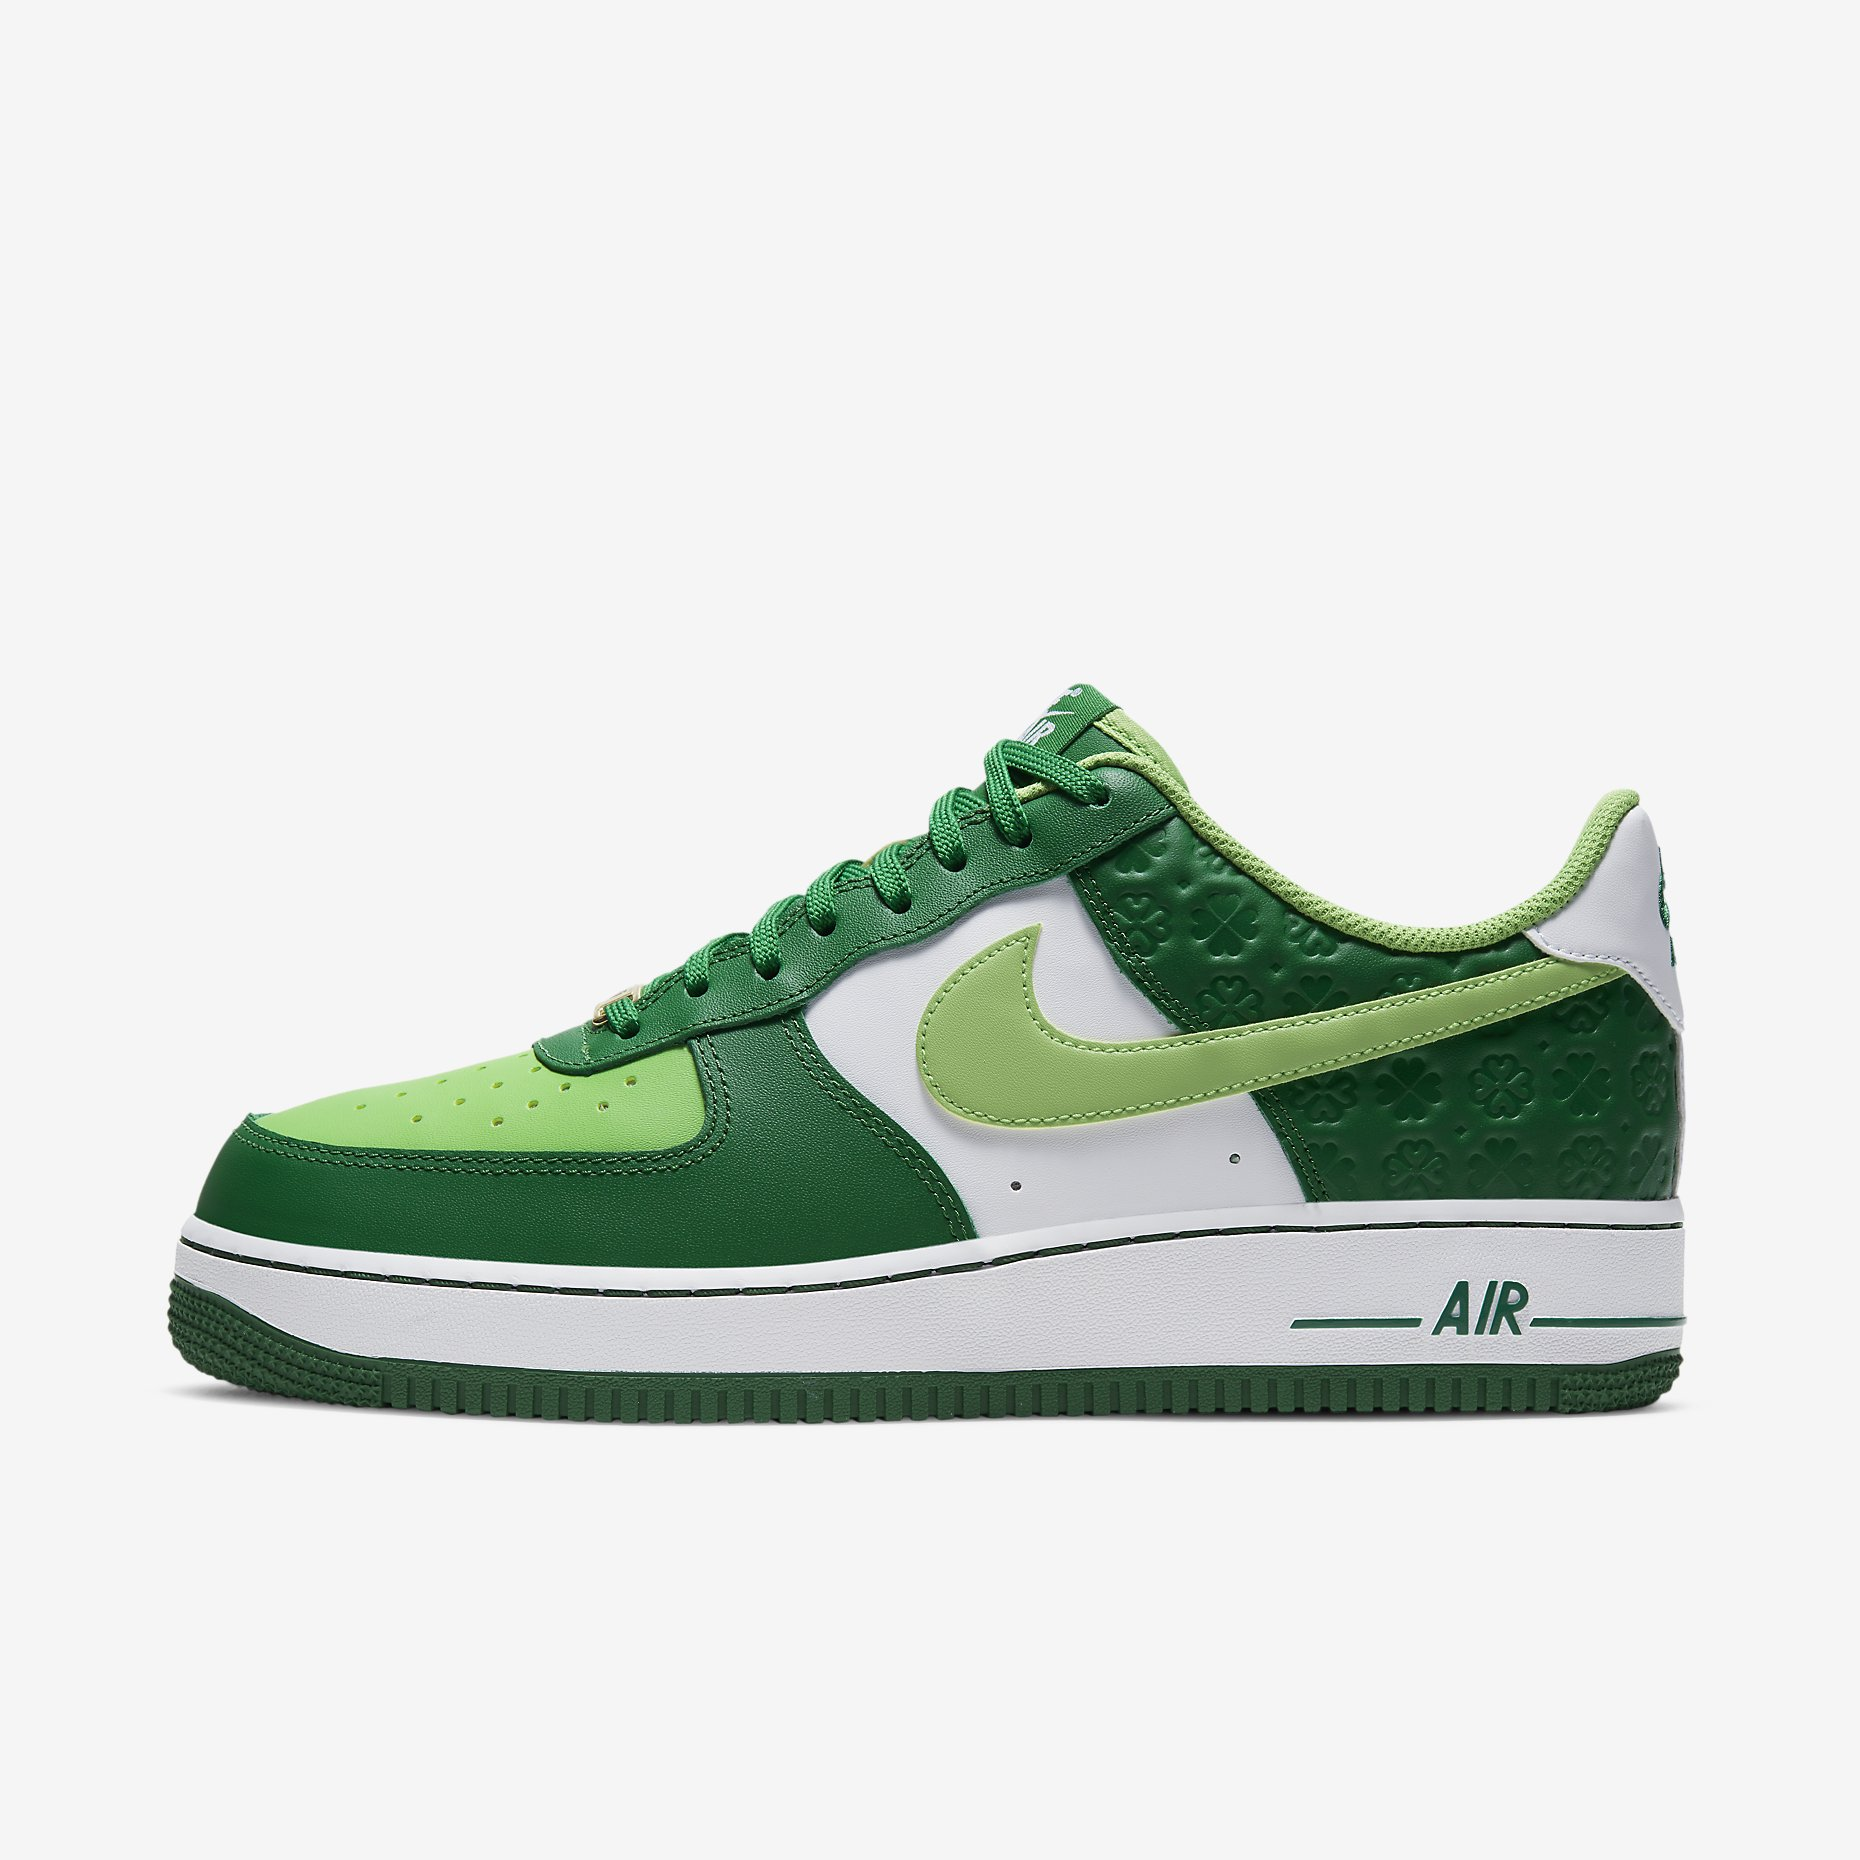 Nike Air Force 1 Low 'St Patricks Day'}